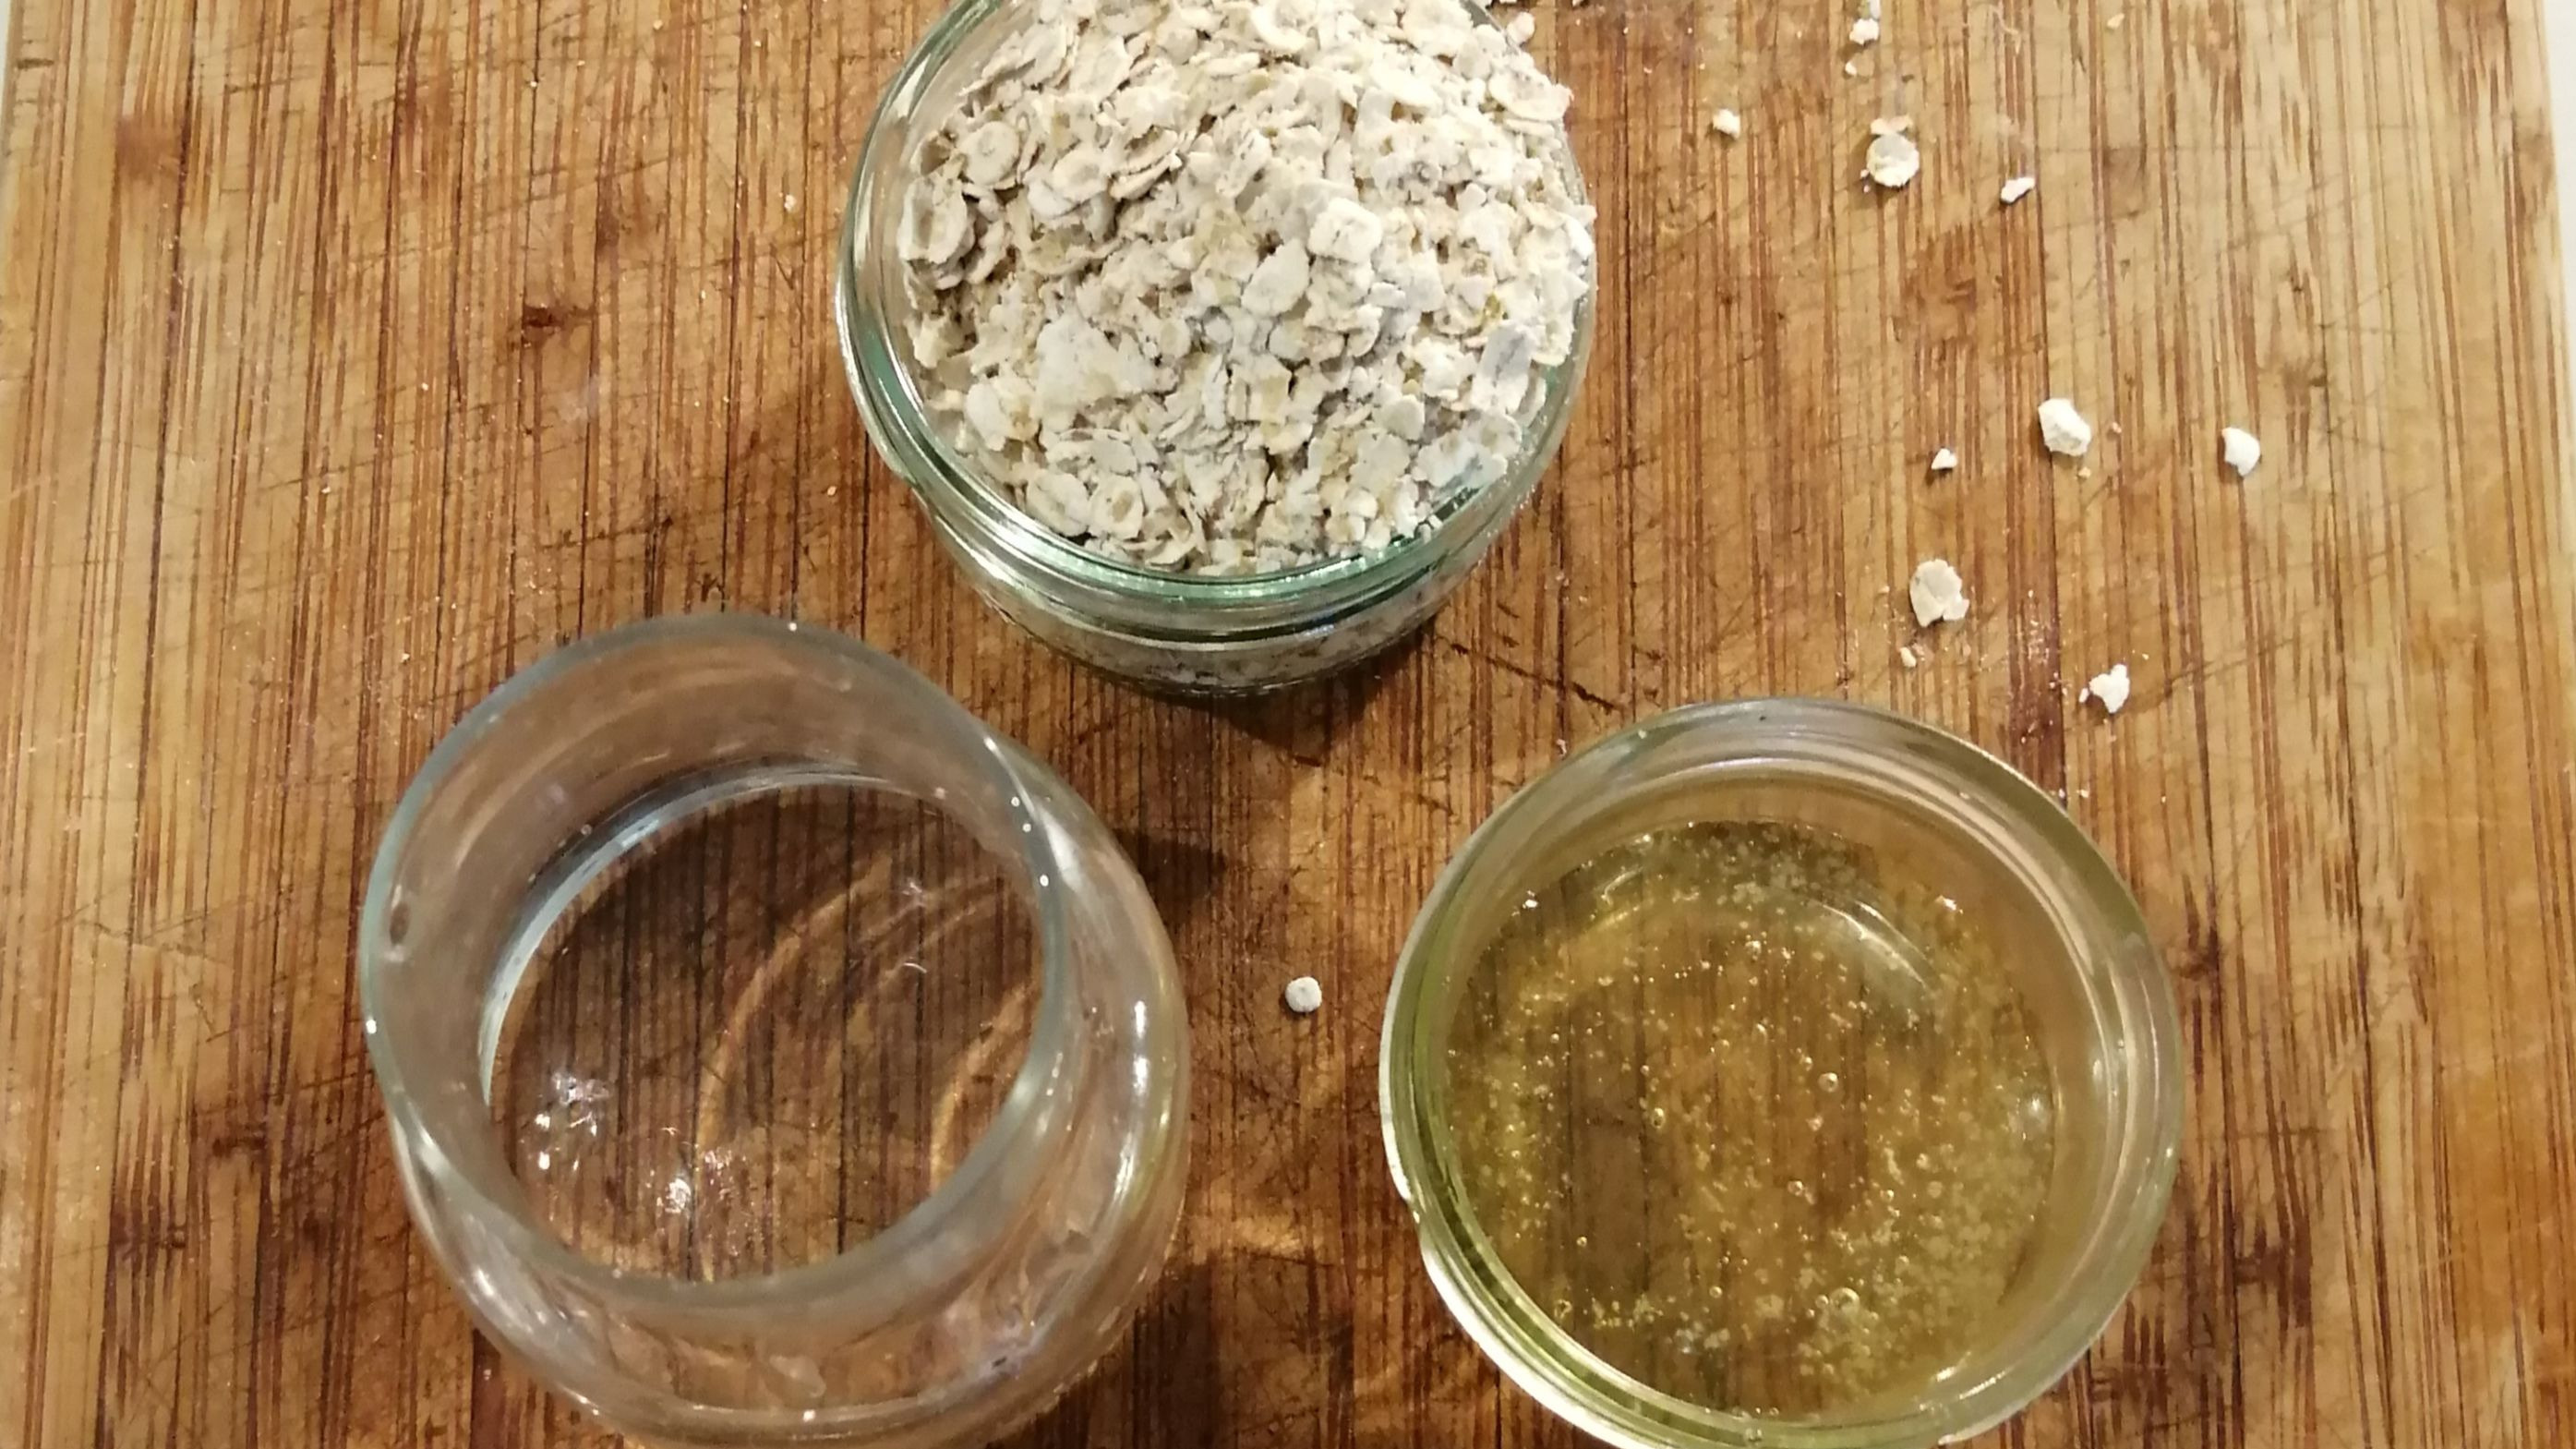 Making oat facial scrub // My Slow Experience